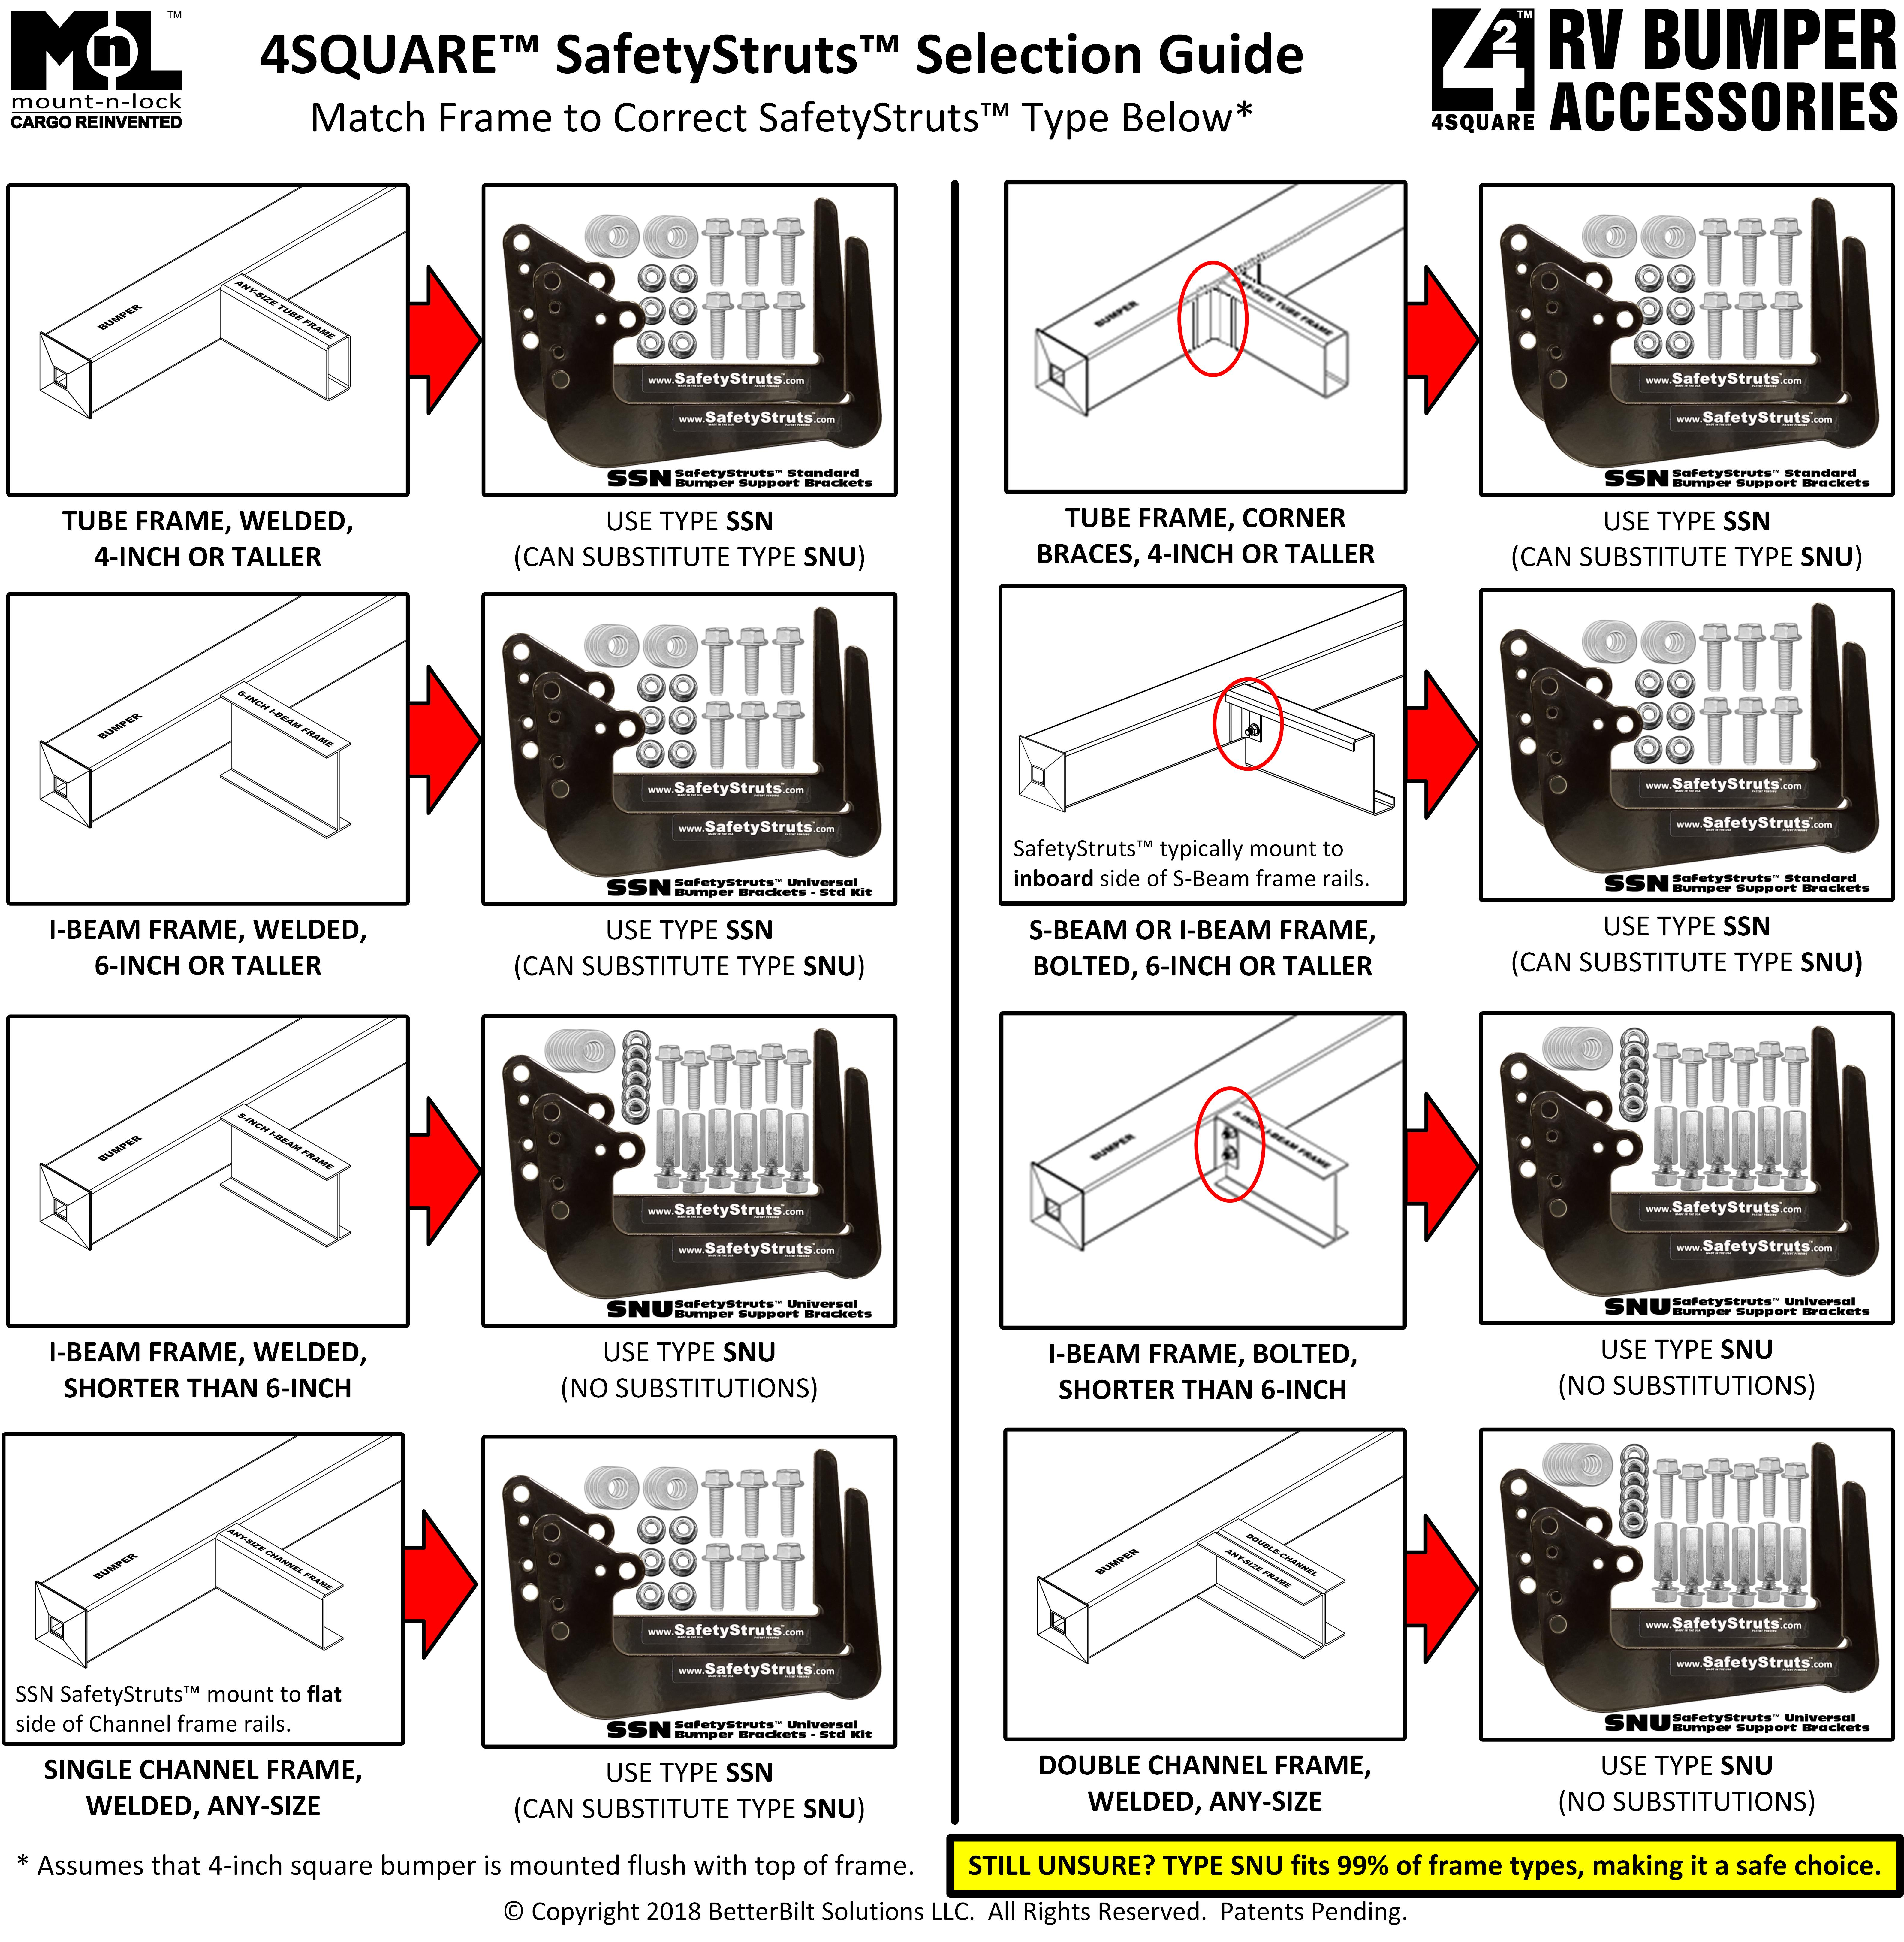 4SQUARE SafetyStruts Selection Guide